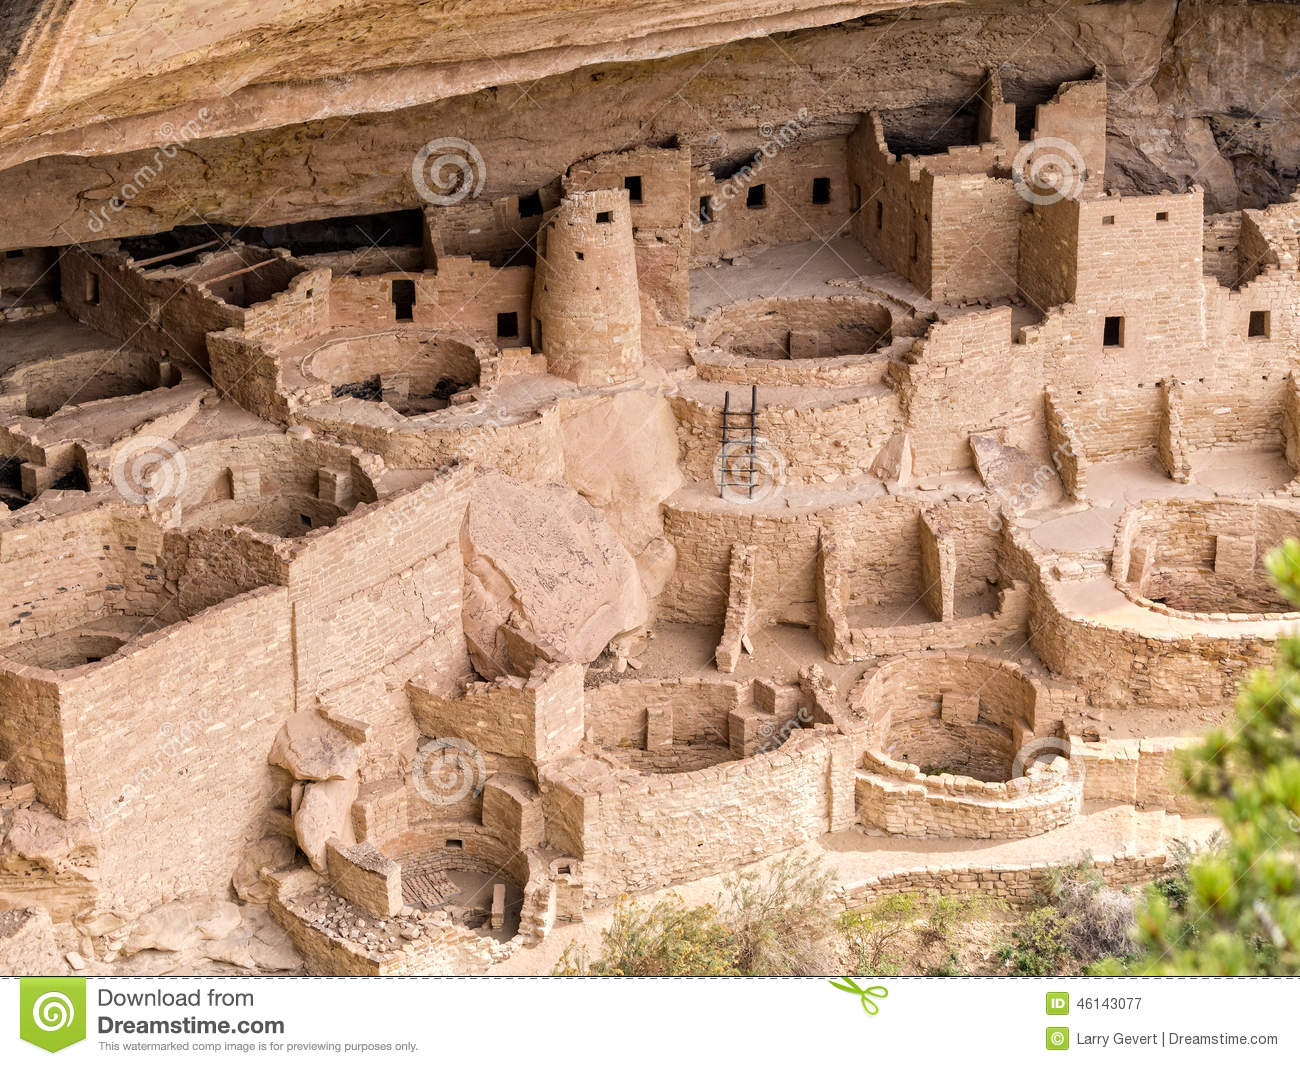 mesa verde national park hindu personals Colorado archaeological sites include mesa verde, canyons of the ancients, hovenweep and other places the area's ancestral puebloans called home thousands of years ago.